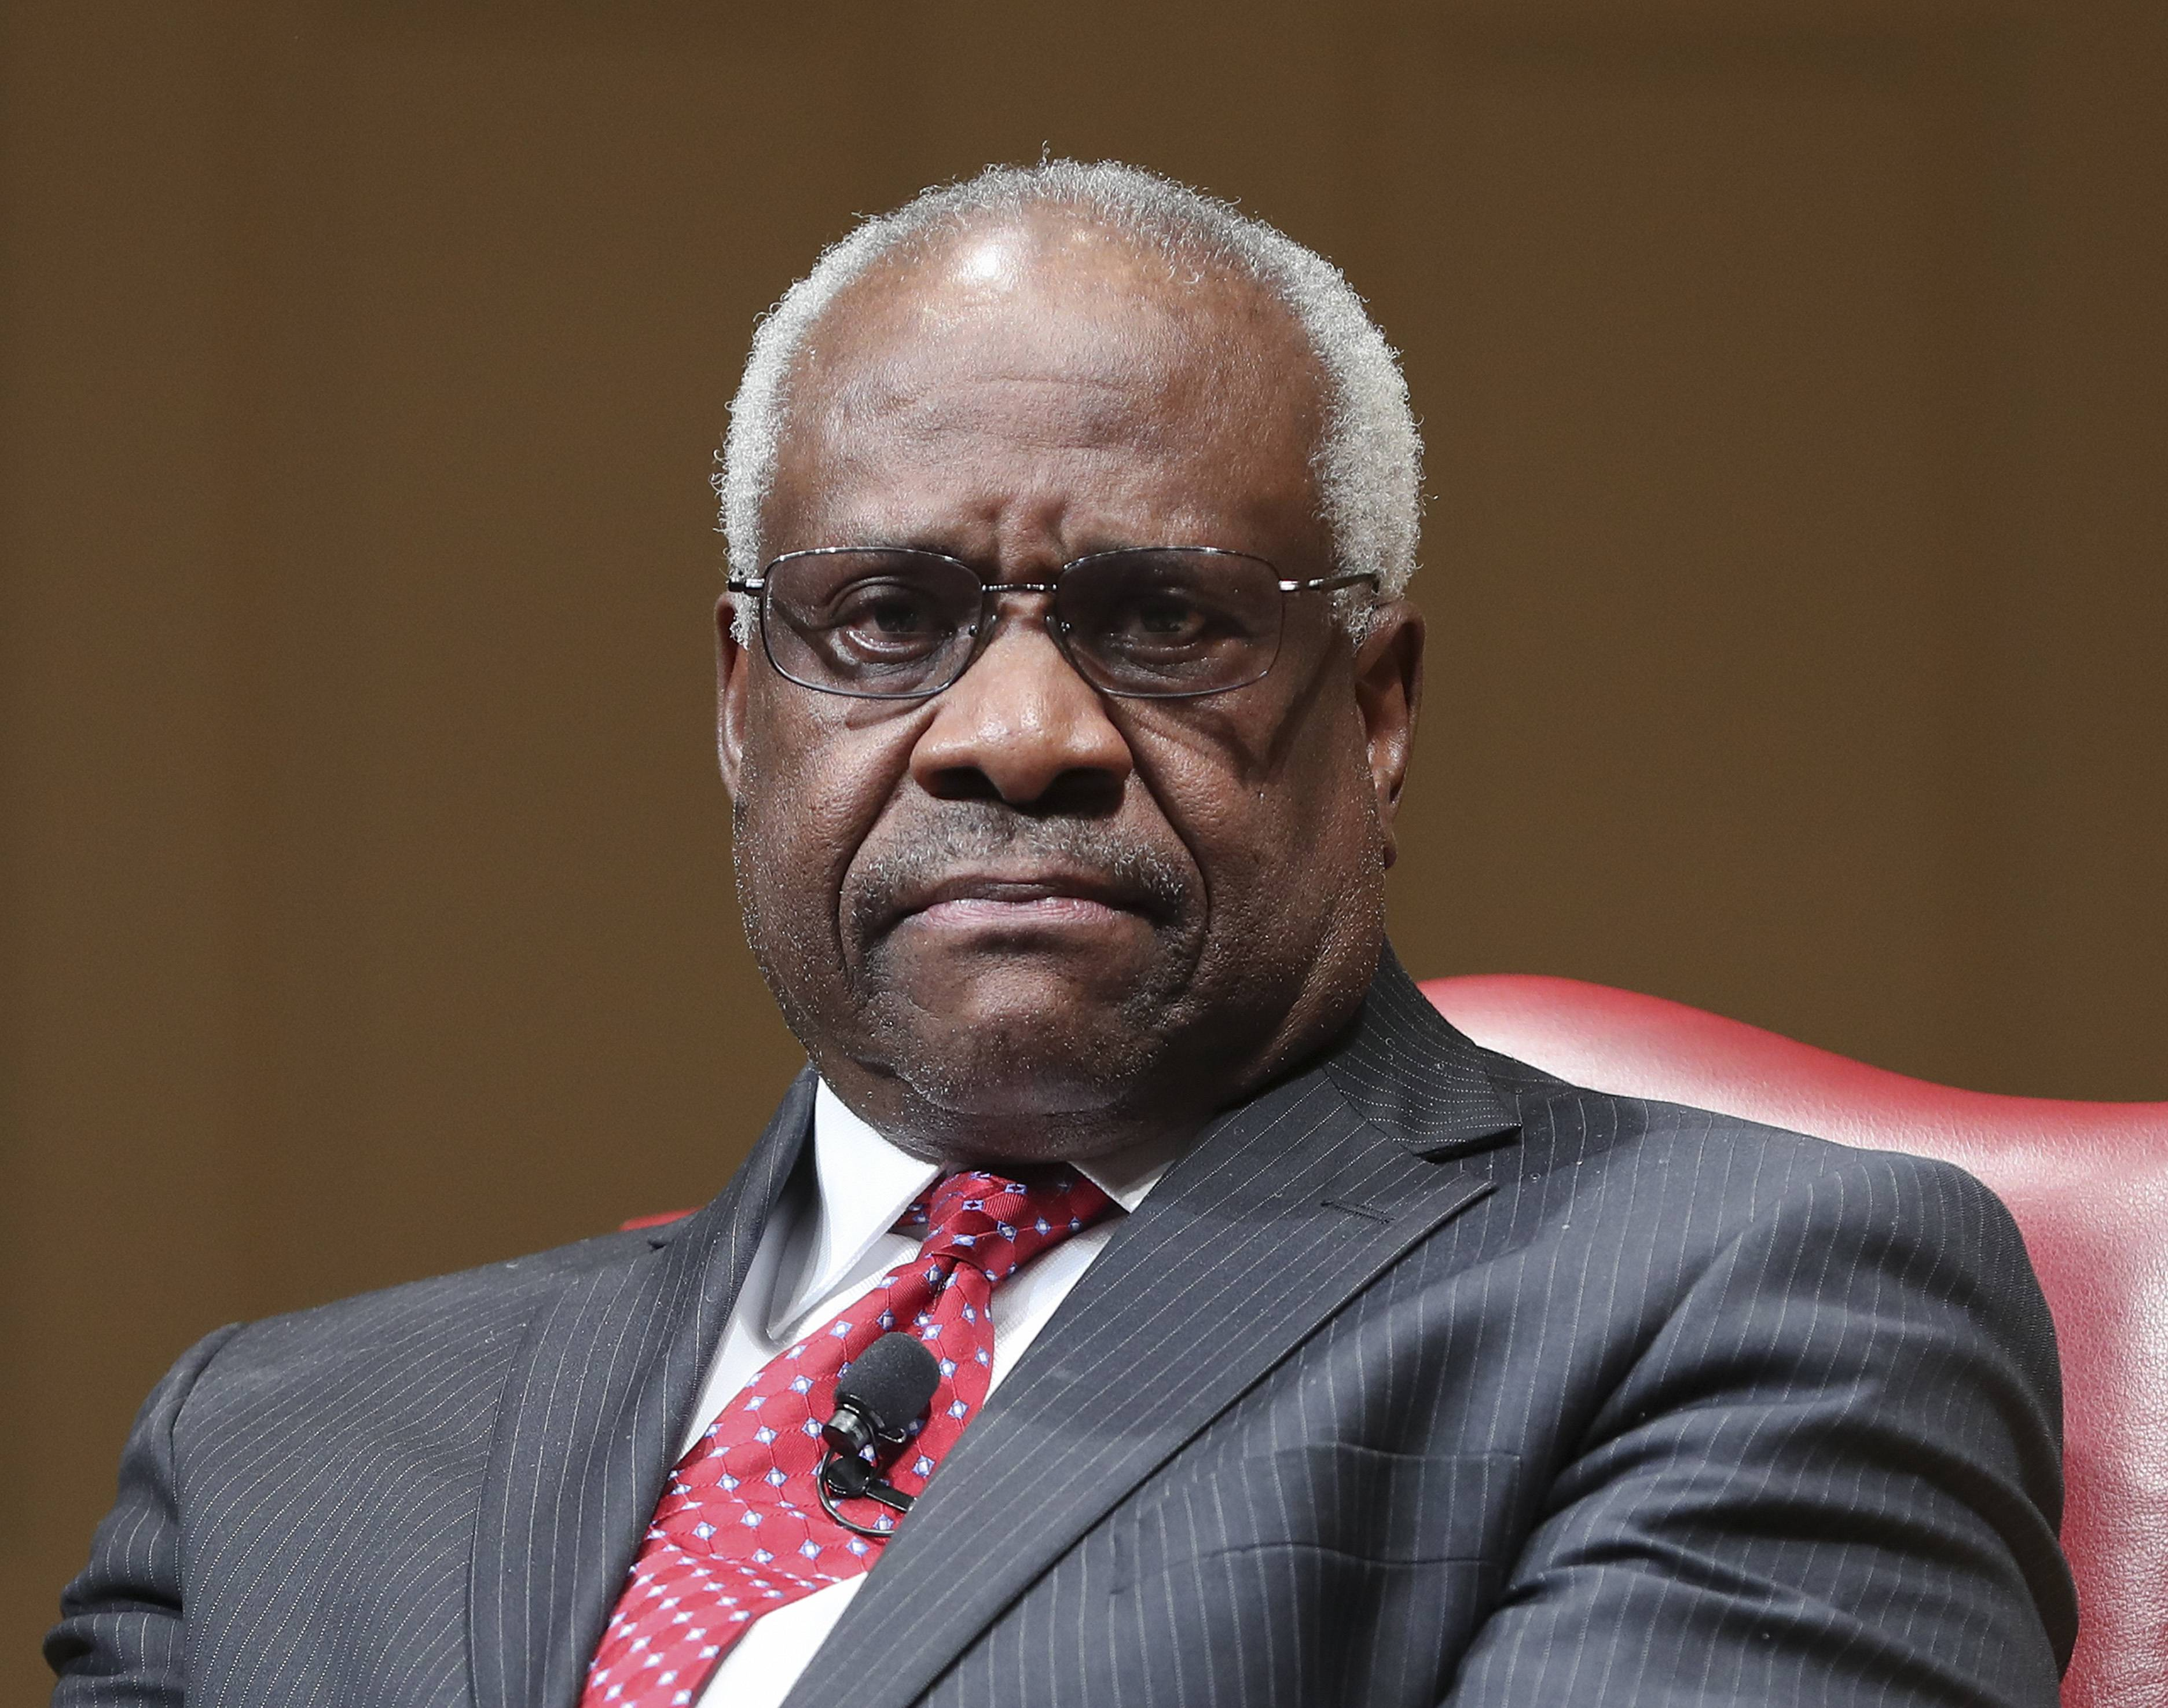 "FILE — In this Feb. 15, 2018, file photo, Supreme Court Associate Justice Clarence Thomas sits as he is introduced during an event at the Library of Congress in Washington. When Thomas arrived at the Supreme Court in the fall of 1991 after a bruising confirmation hearing in which his former employee Anita Hill accused him of sexual harassment, fellow justice Byron White said something that stuck with him. ""It doesn't matter how you got here. All that matters now is what you do here,"" Thomas recounted in his 2007 memoir, ""My Grandfather's Son."""